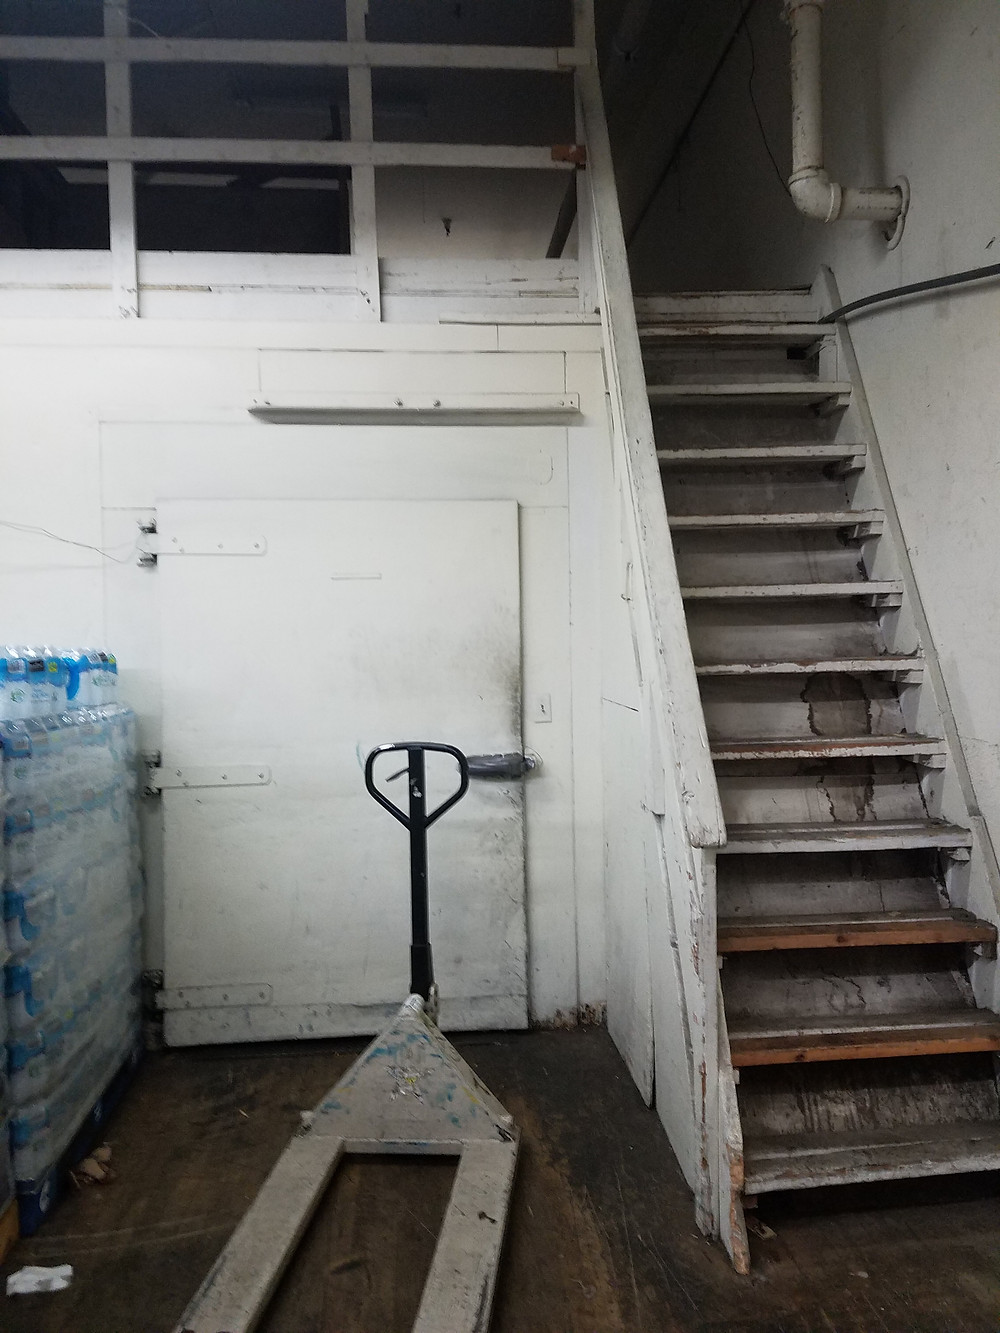 Some stairs in a back room. Enough said